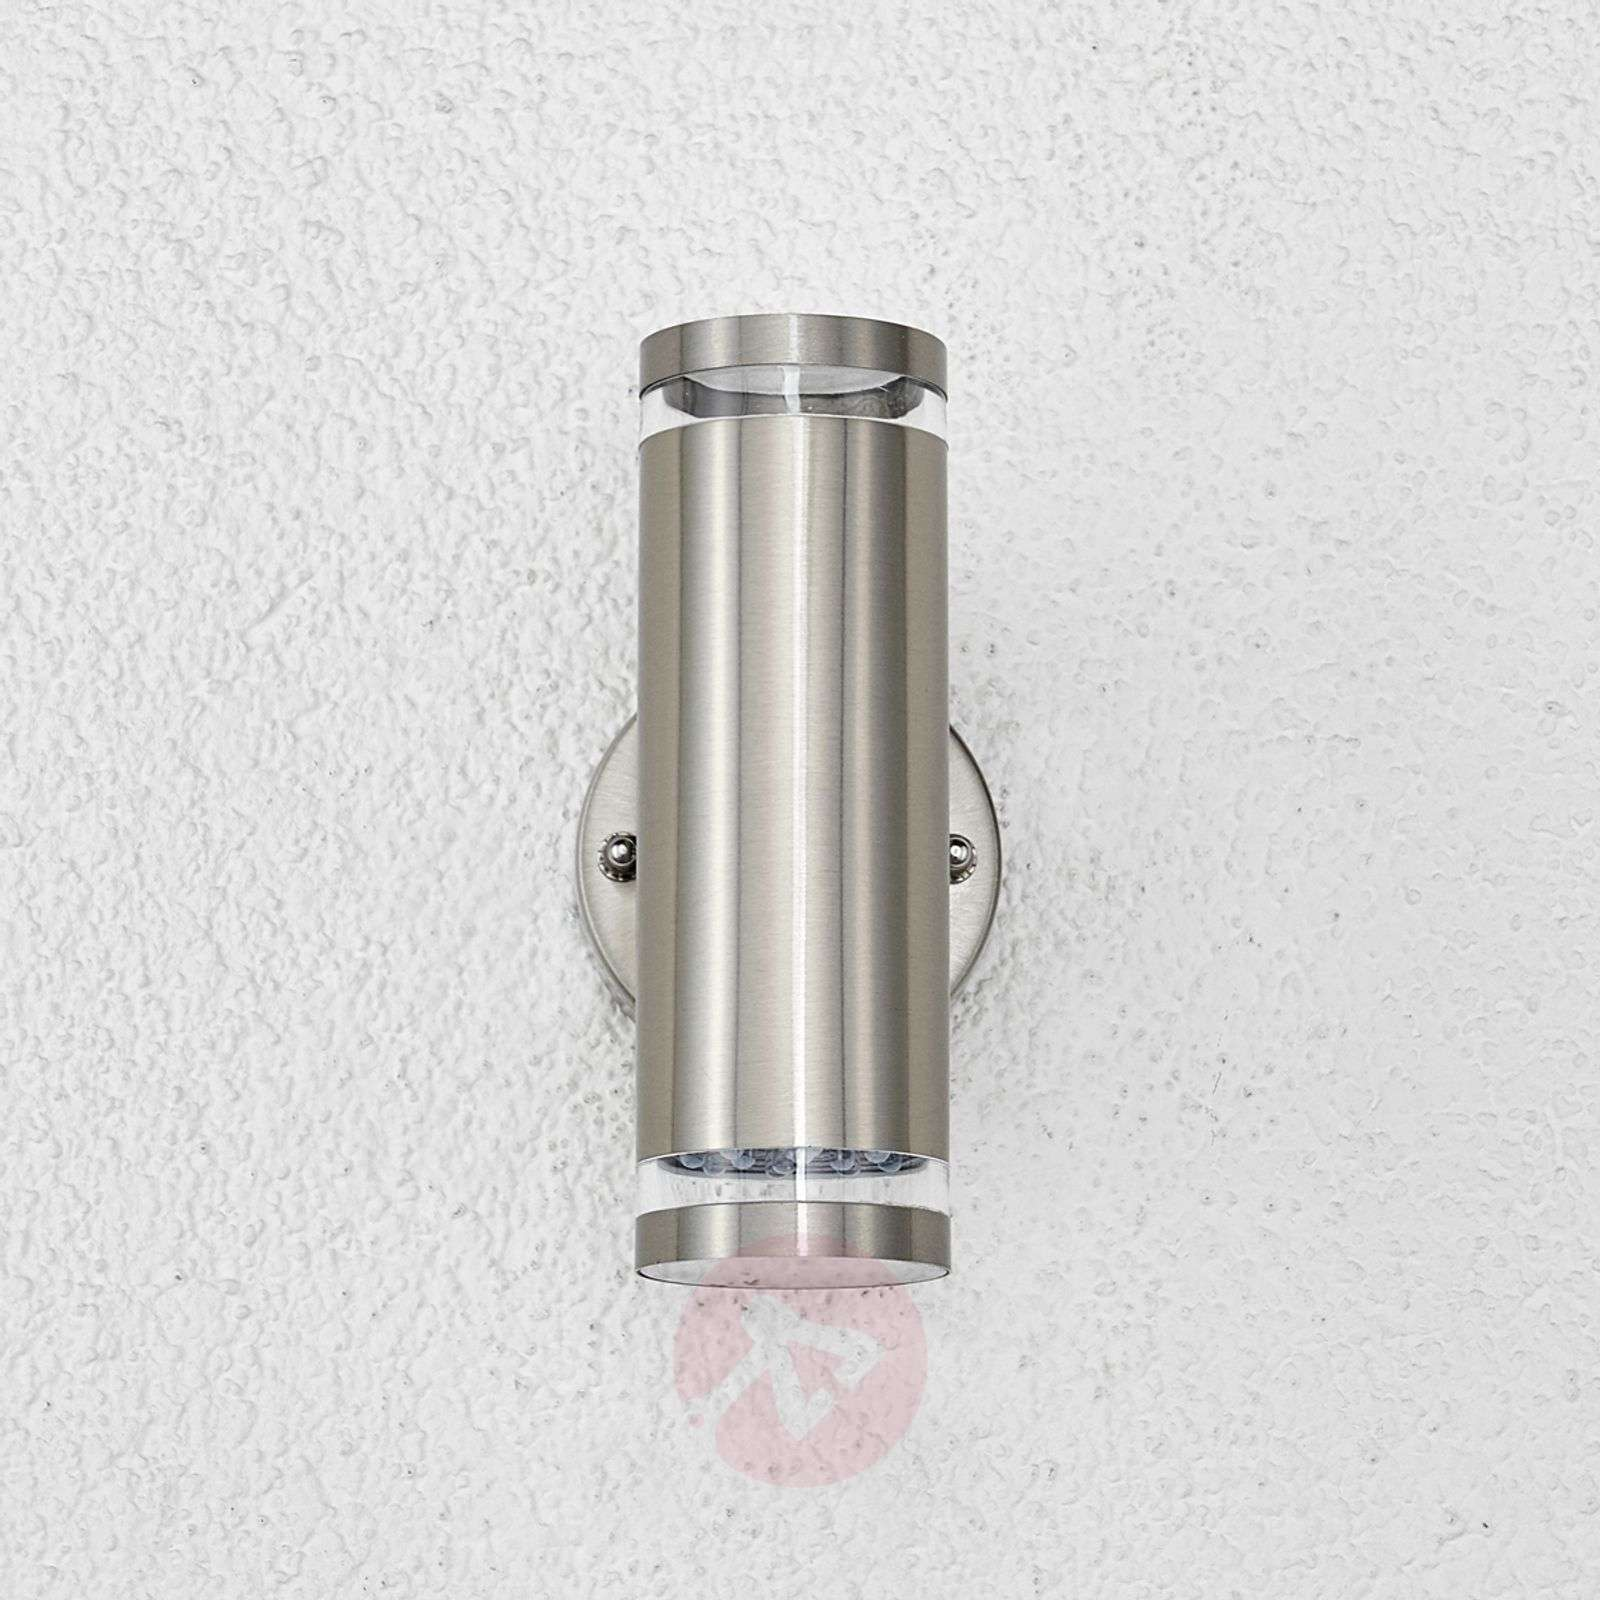 Tiberus stainless steel LED outdoor wall light